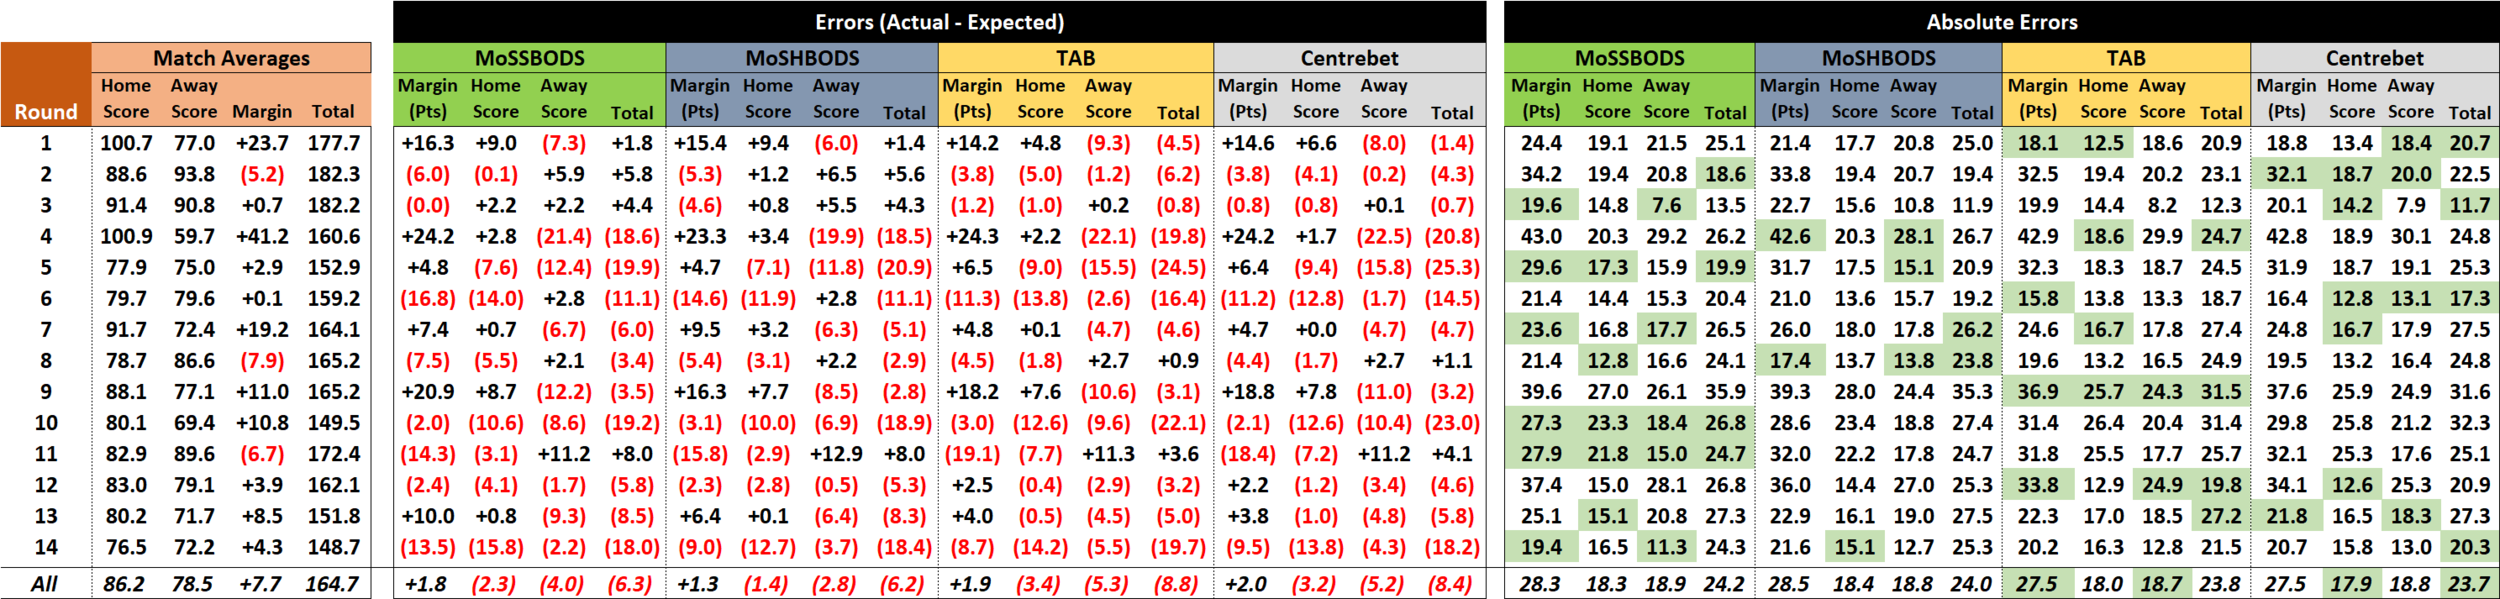 R15 - Score Forecast Performance.png